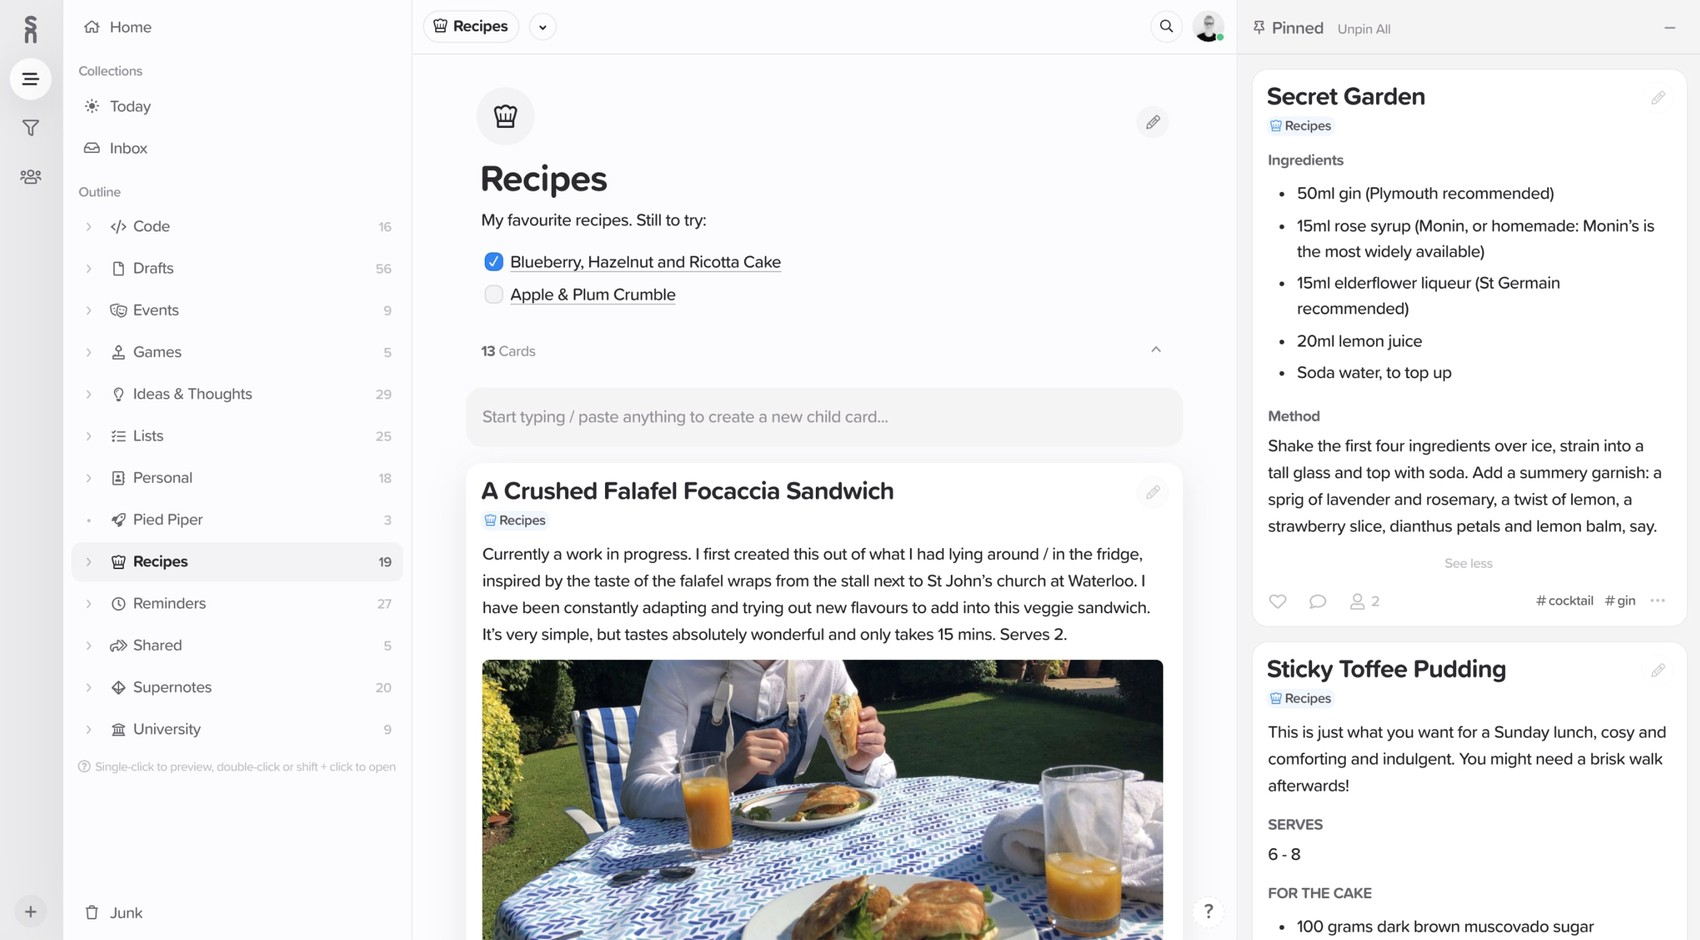 Best Note-taking App for Chefs